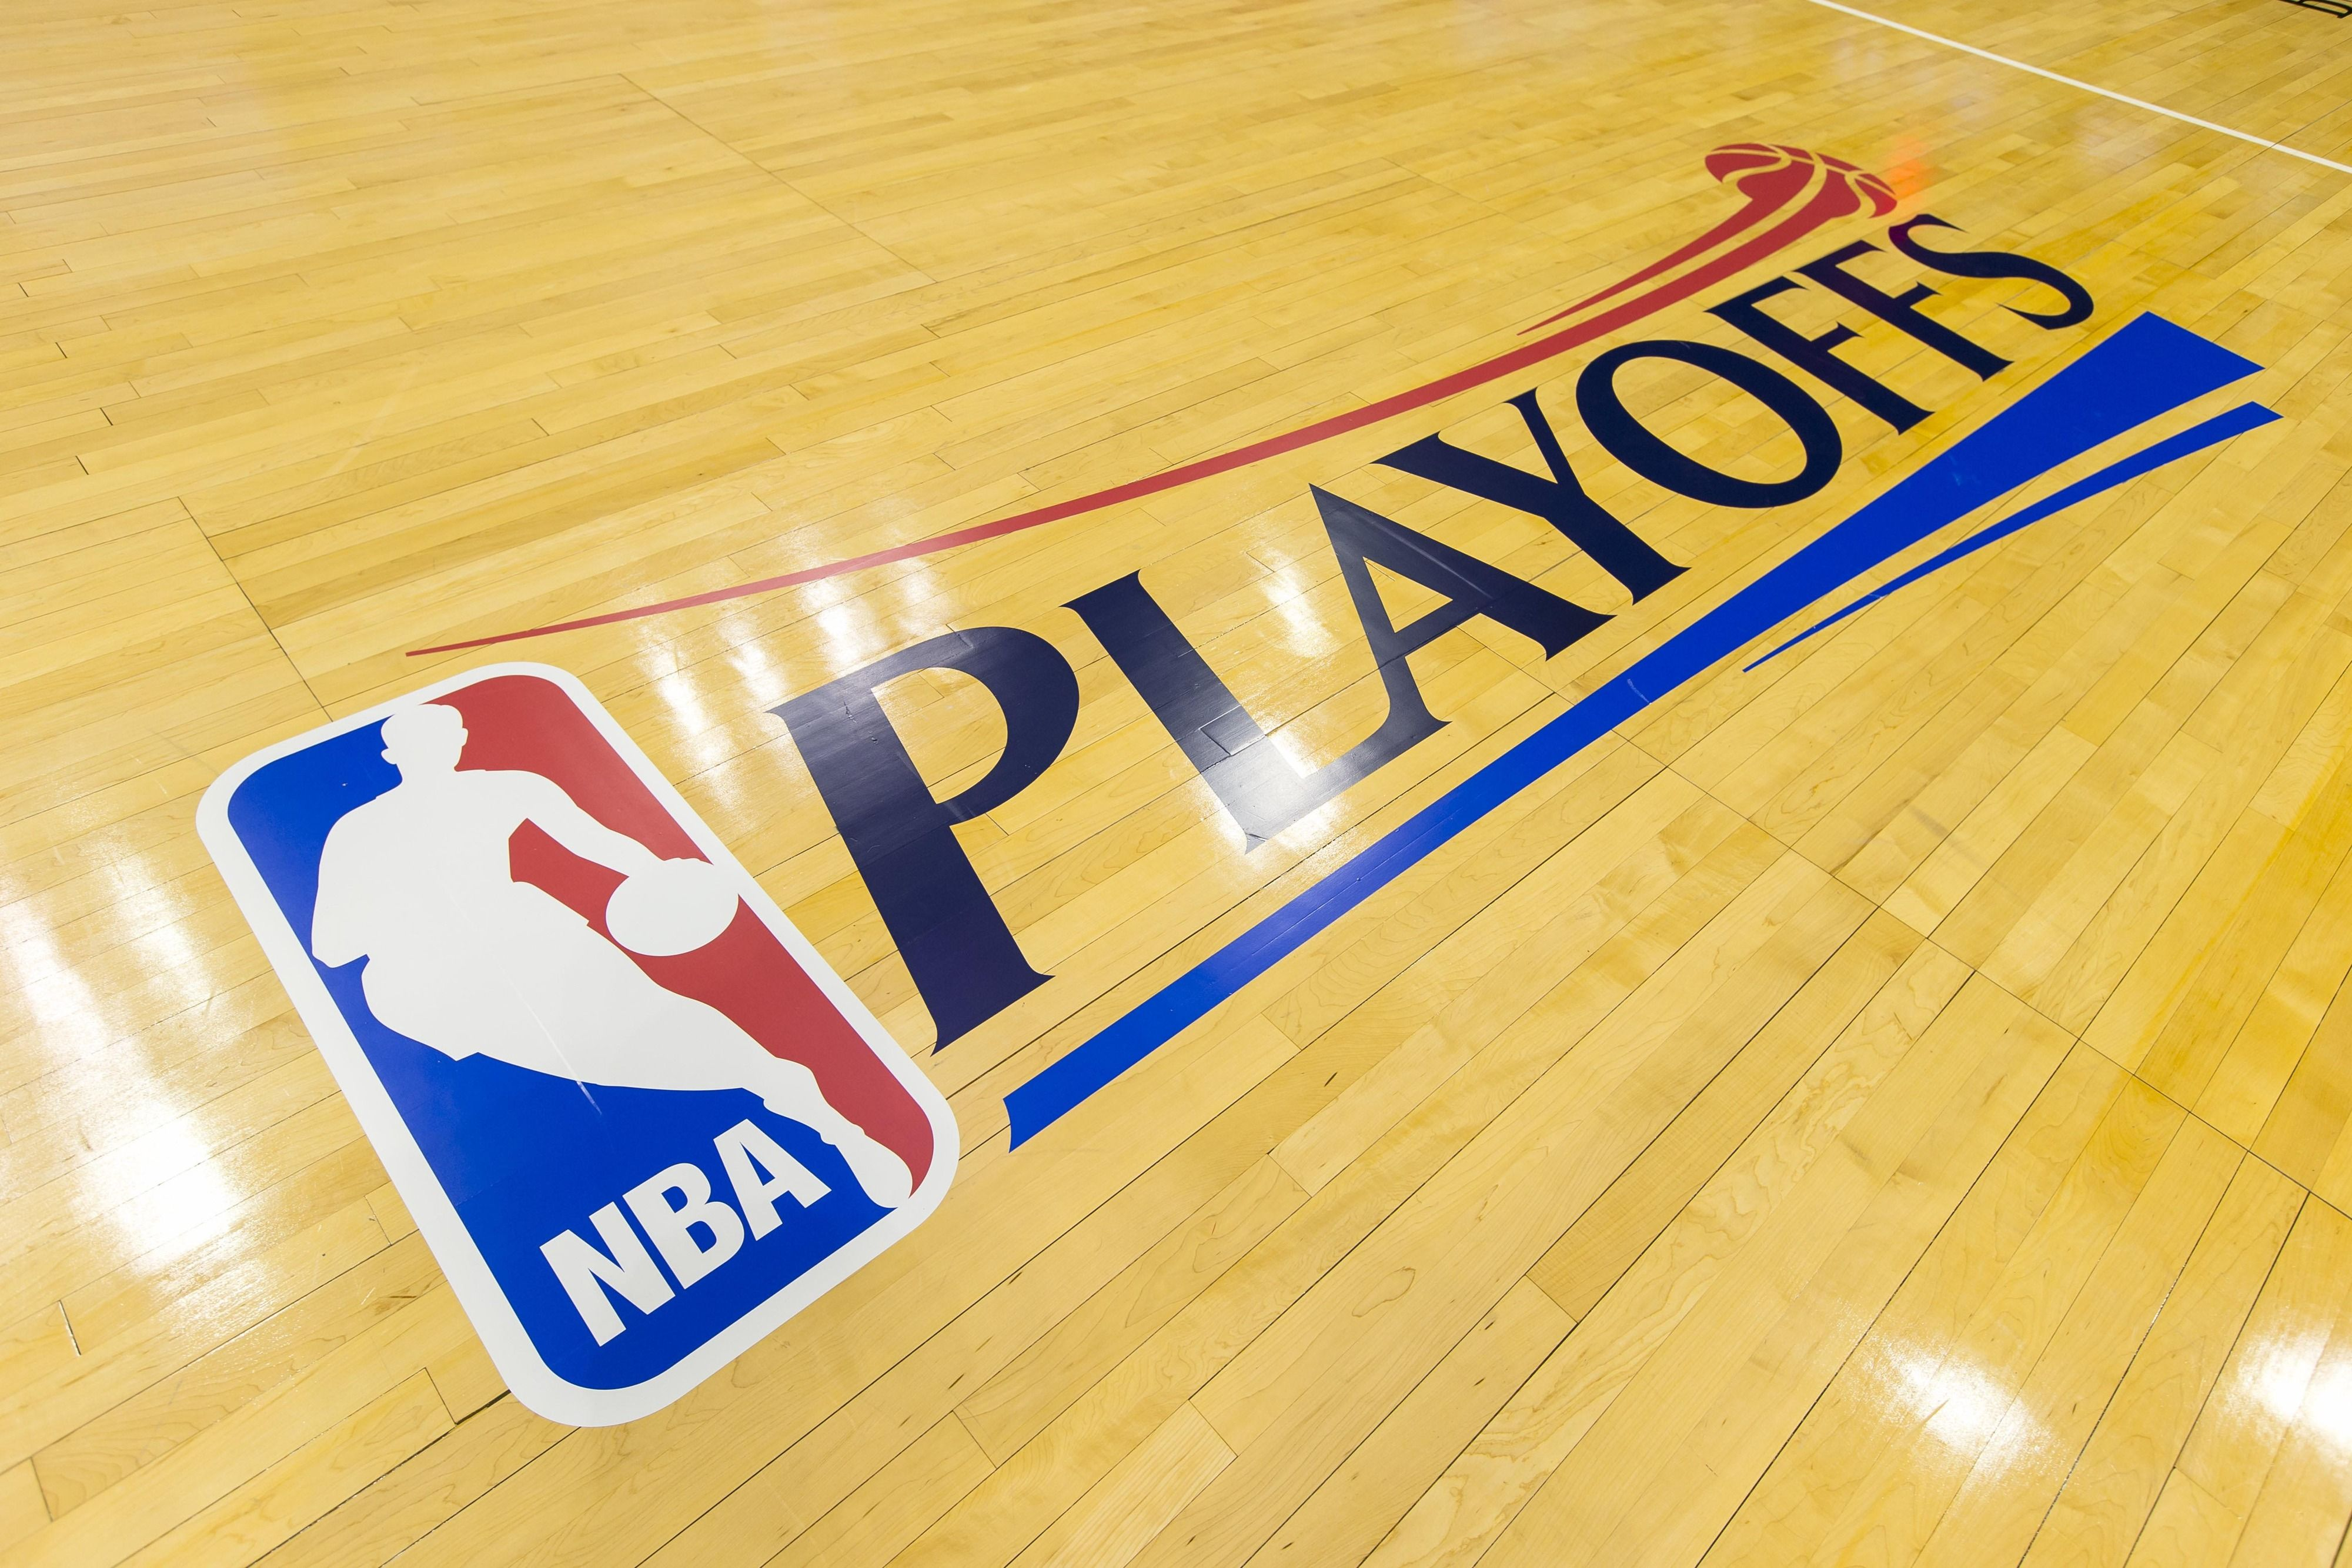 2015 NBA Playoffs Conference 1st Round Previews and